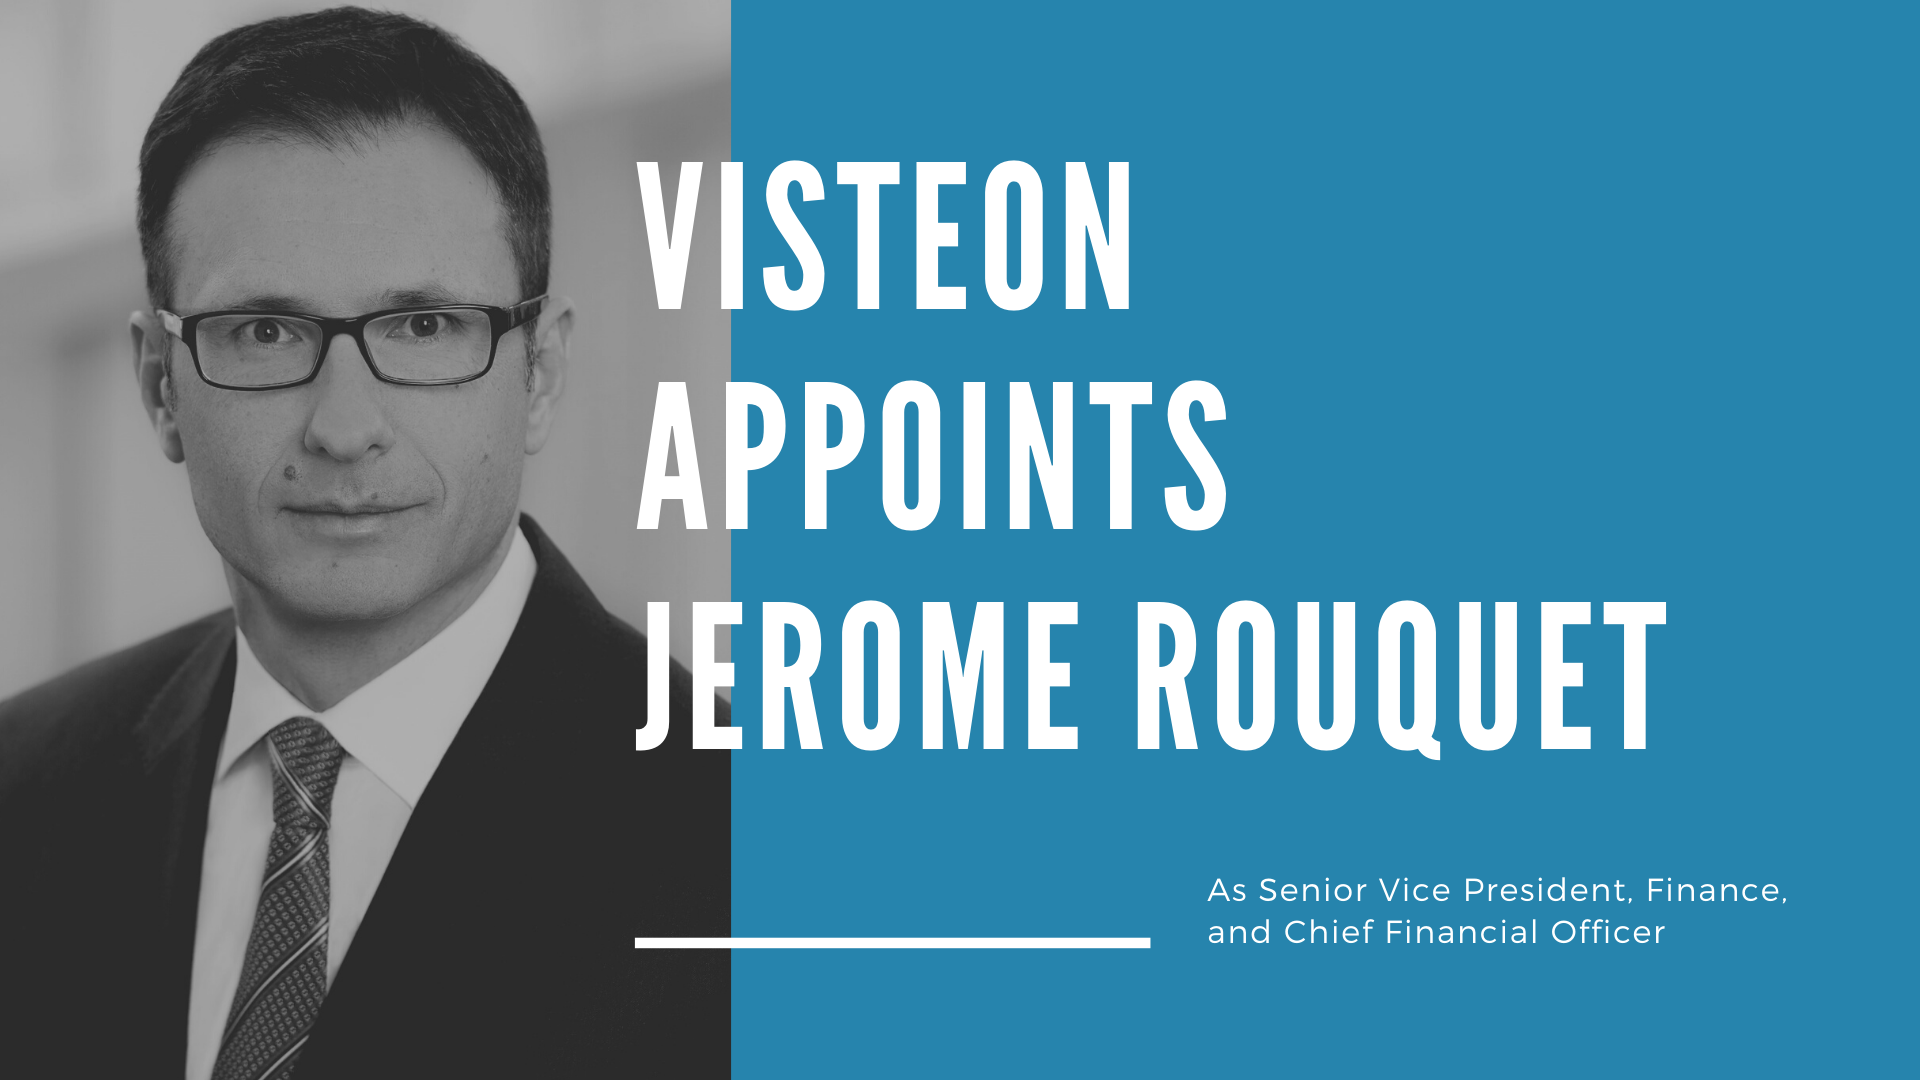 Visteon Appoints Jerome Rouquet